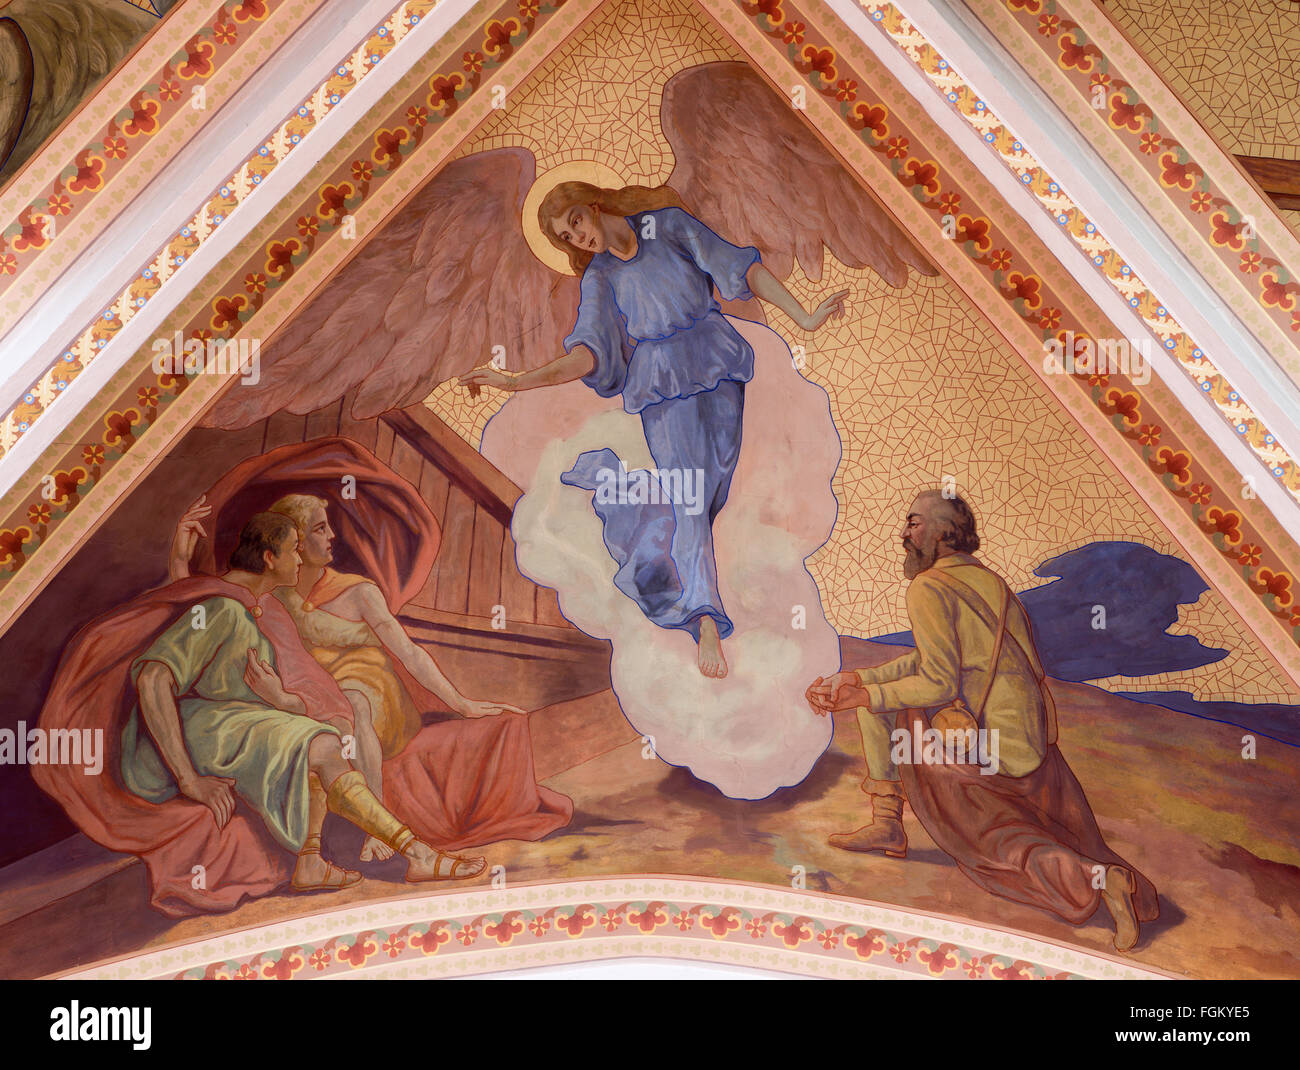 BANSKA STIAVNICA, SLOVAKIA - FEBRUARY 5, 2015: The Apparation of angels to shepherds, by P. J. Kern, (1910). - Stock Image